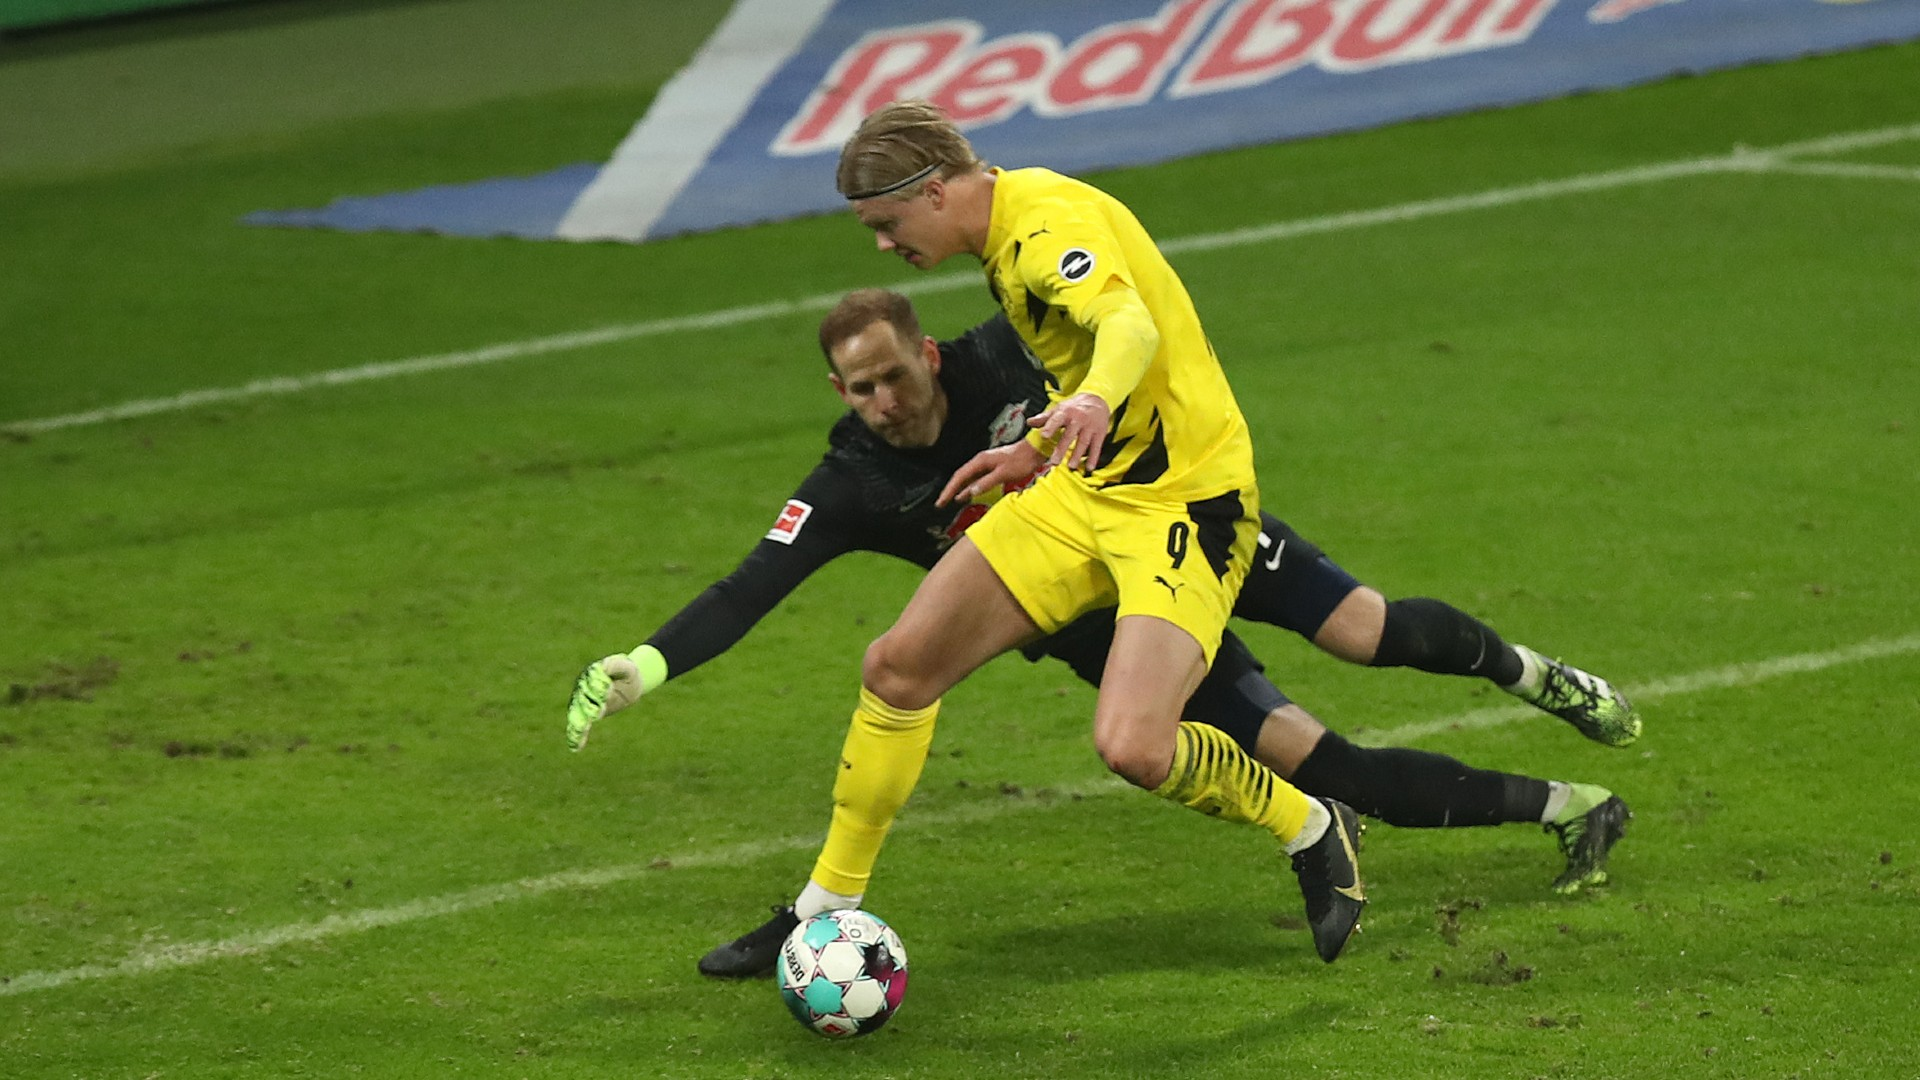 RB Leipzig 1-3 Borussia Dortmund: Haaland at the double as Bayern stay top